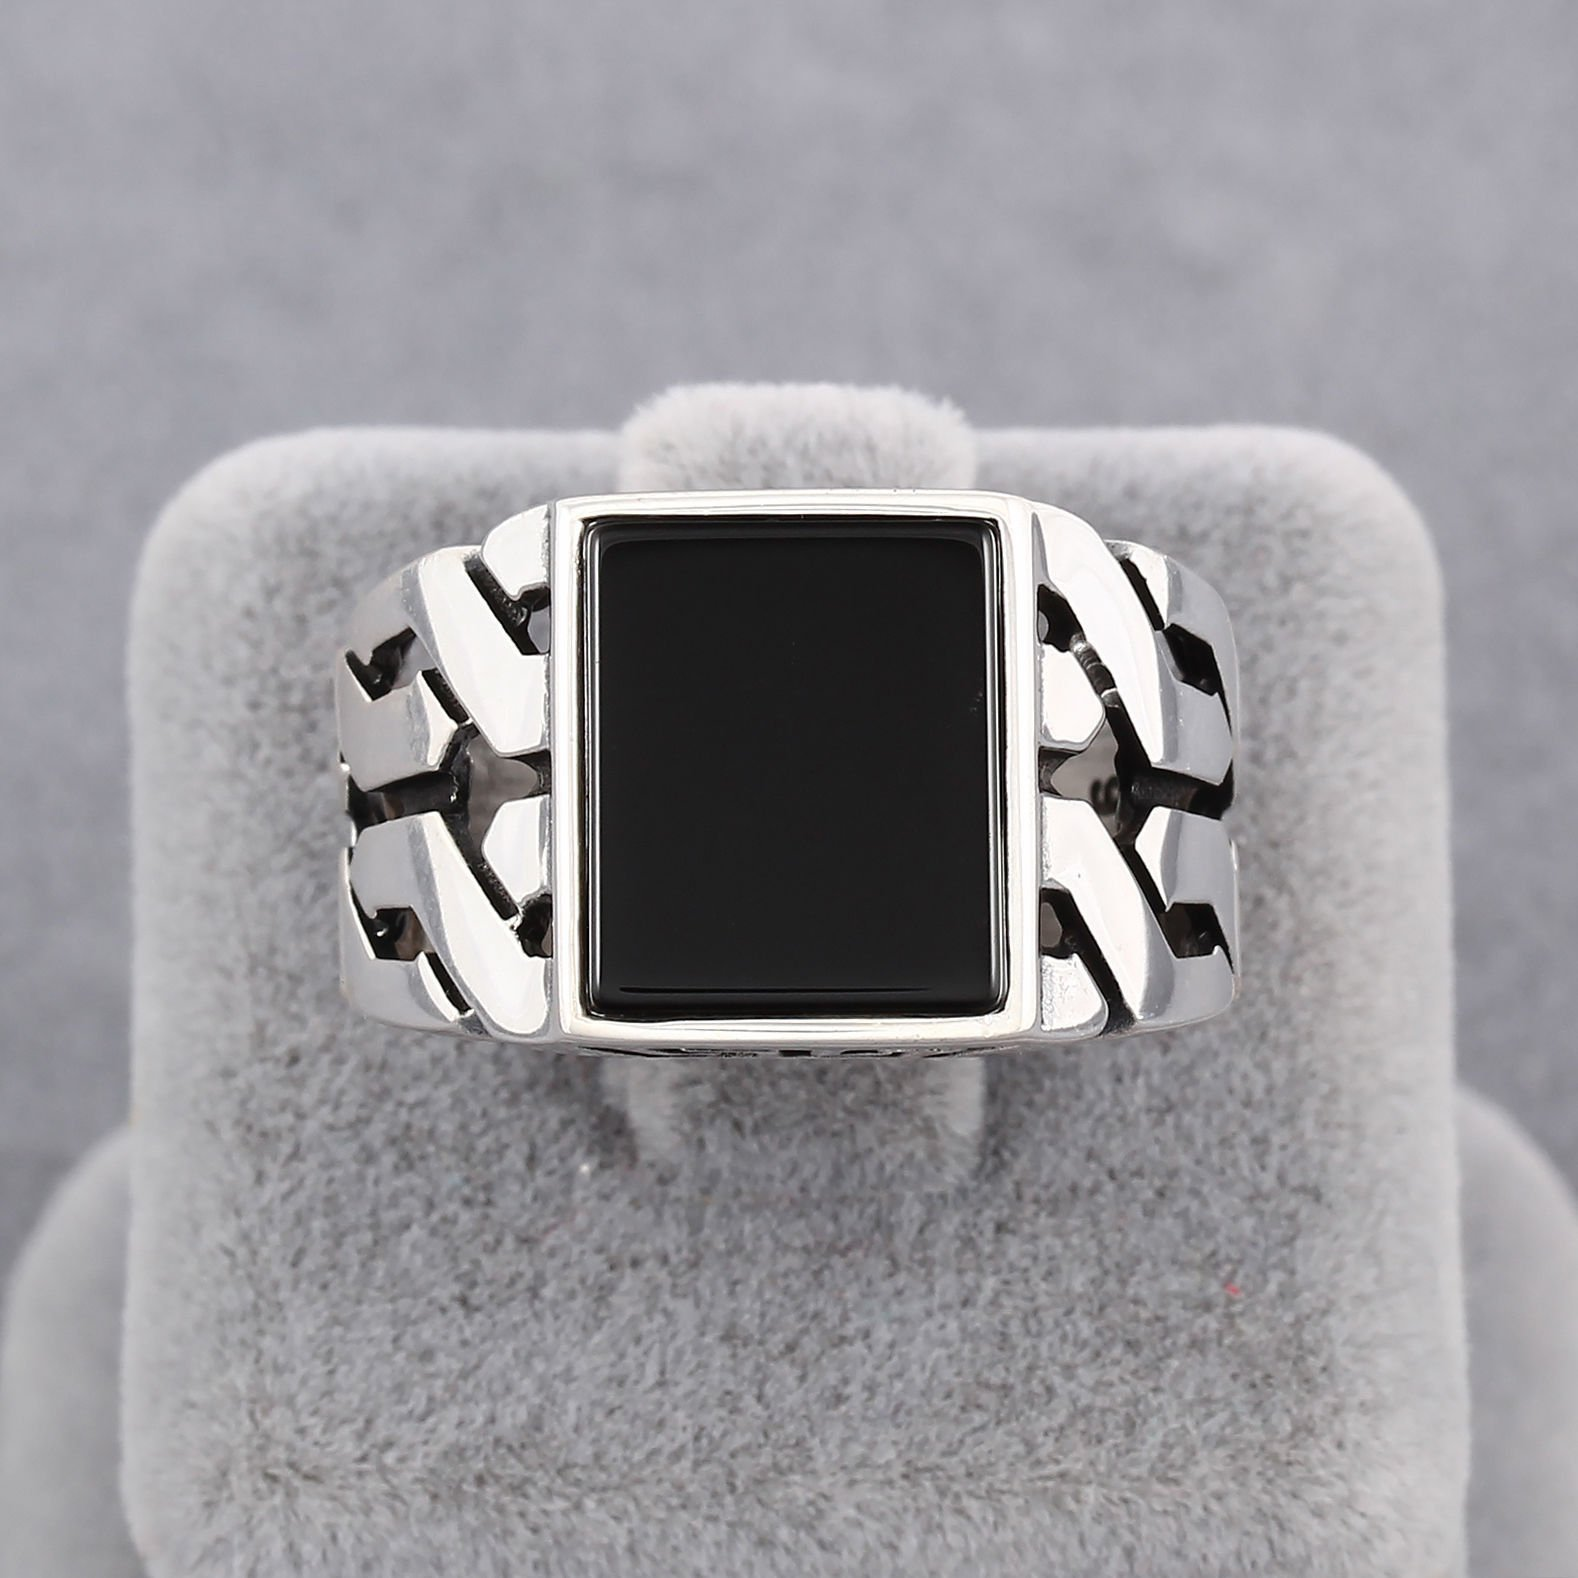 Chimoda Turkish Handmade Jewelry Black Onyx Stone 925 Sterling Silver Men's Ring (9) by Chimoda (Image #4)